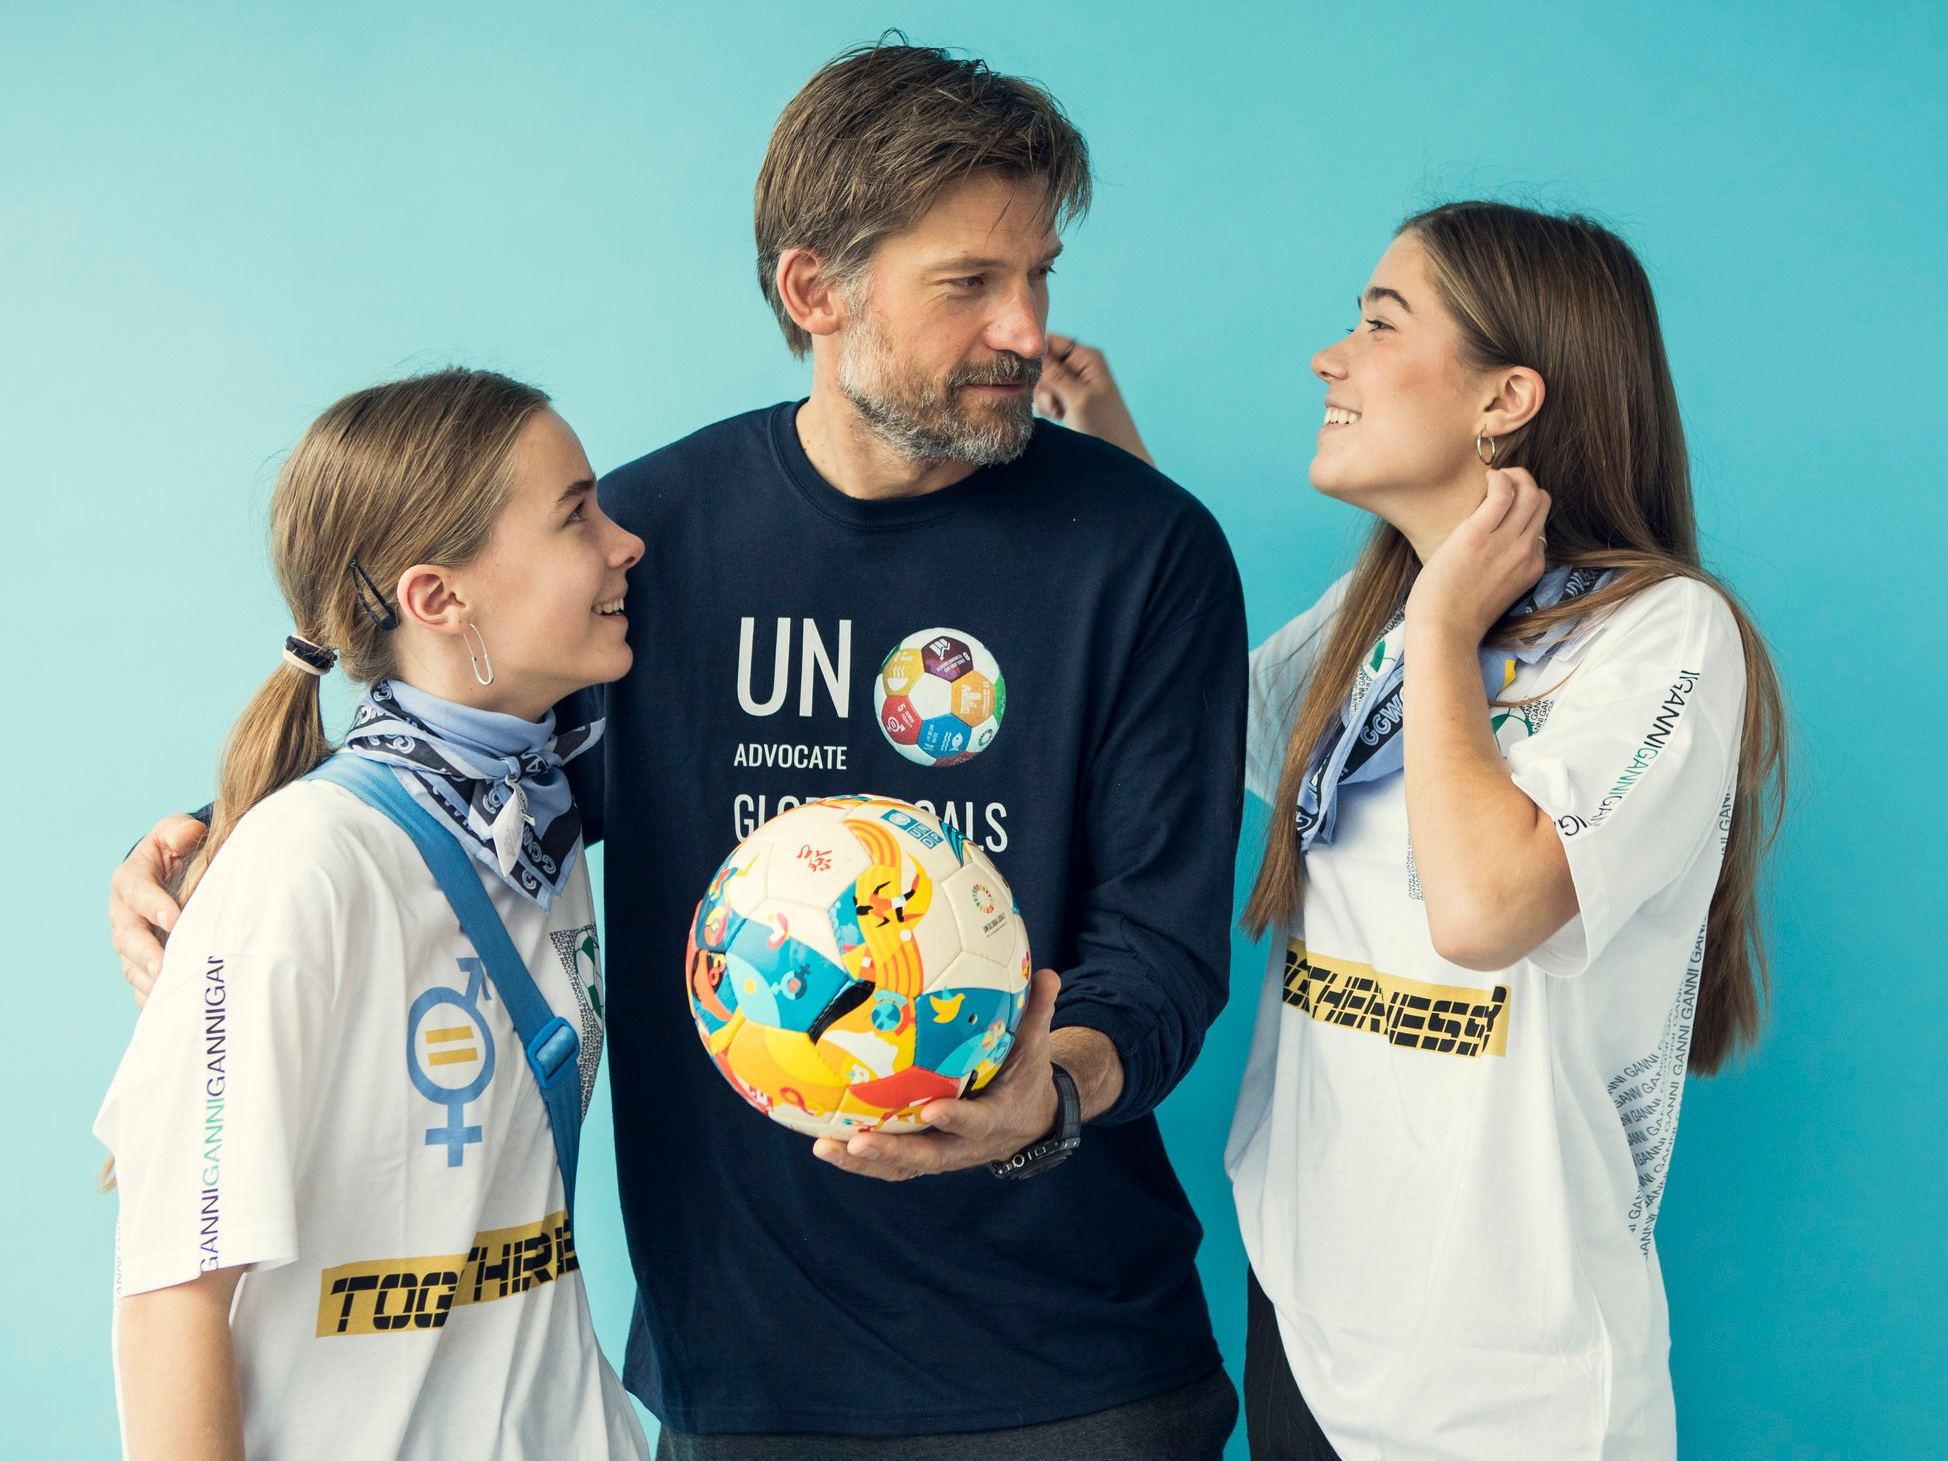 """""""I've brought along my daughters this year so they can see all these remarkable women; scientists, activists, chief executives and policy-makers, all playing soccer,"""" Coster-Waldau said. """"Sports unite people around the world, and can unite people to achieve the SDGs as well."""" Pic from GGWCup Finals New York 2018"""